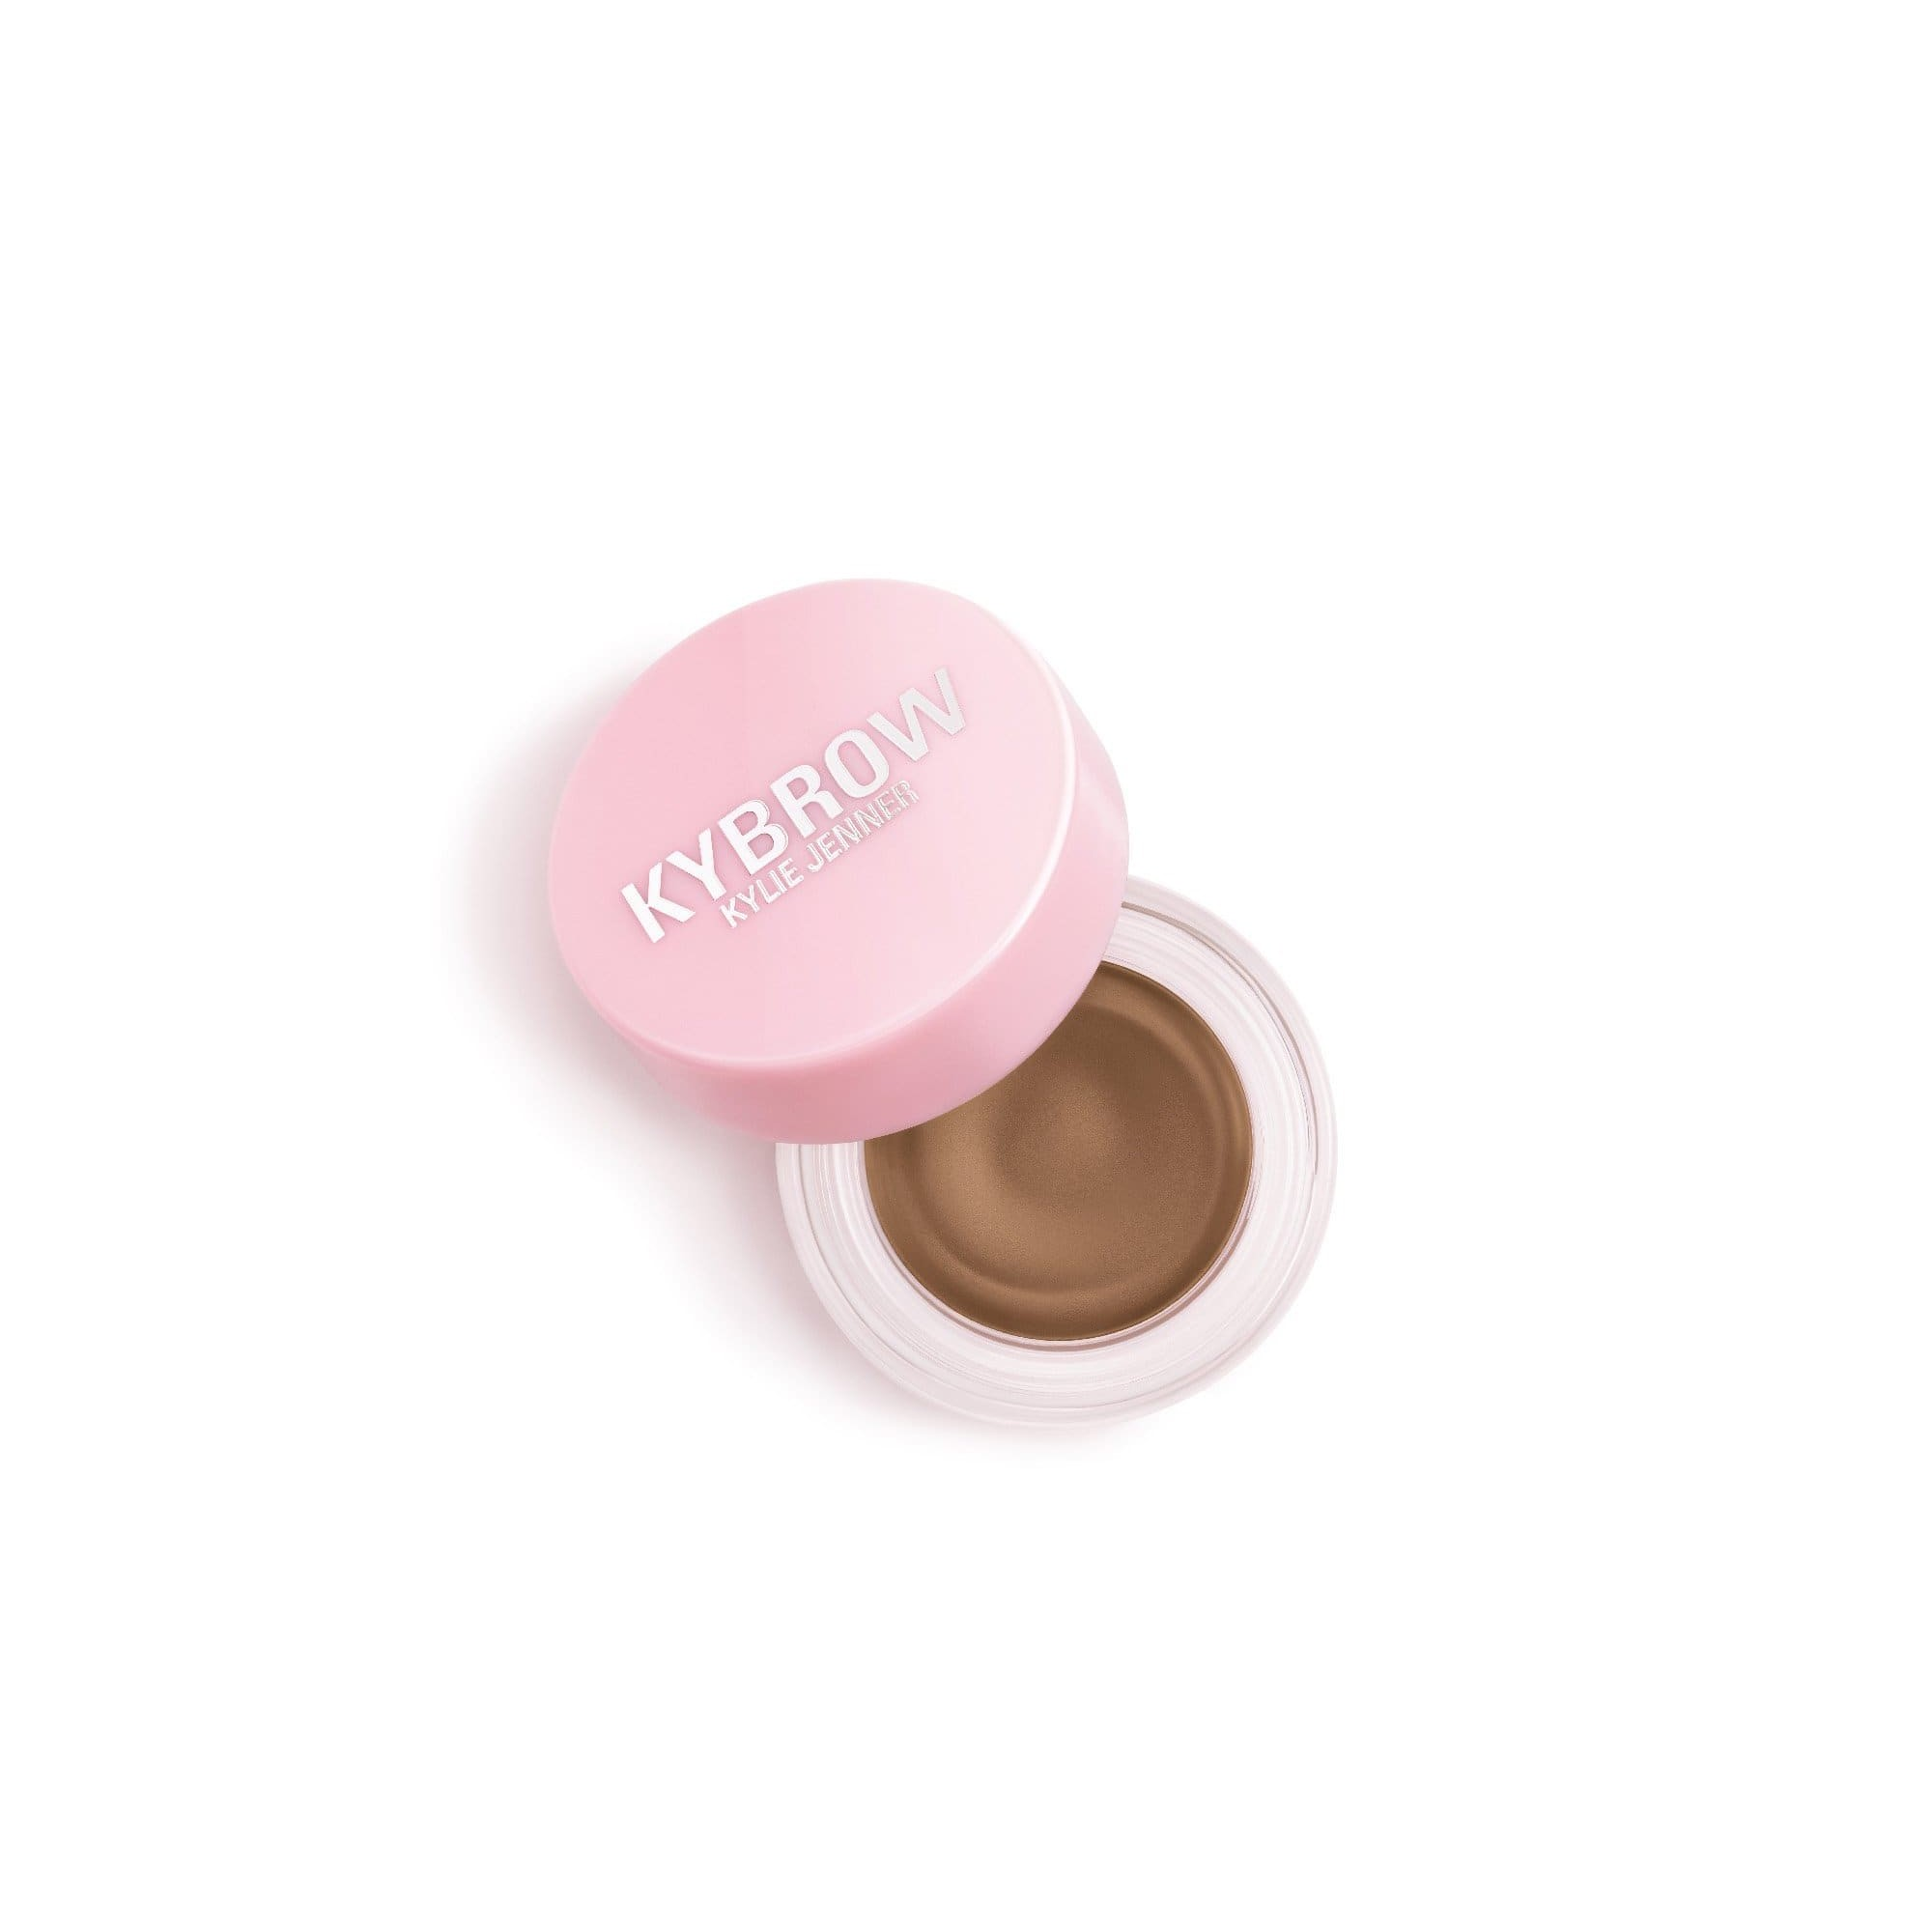 Kylie Cosmetics Brow Pomade Kybrow Cool Brown